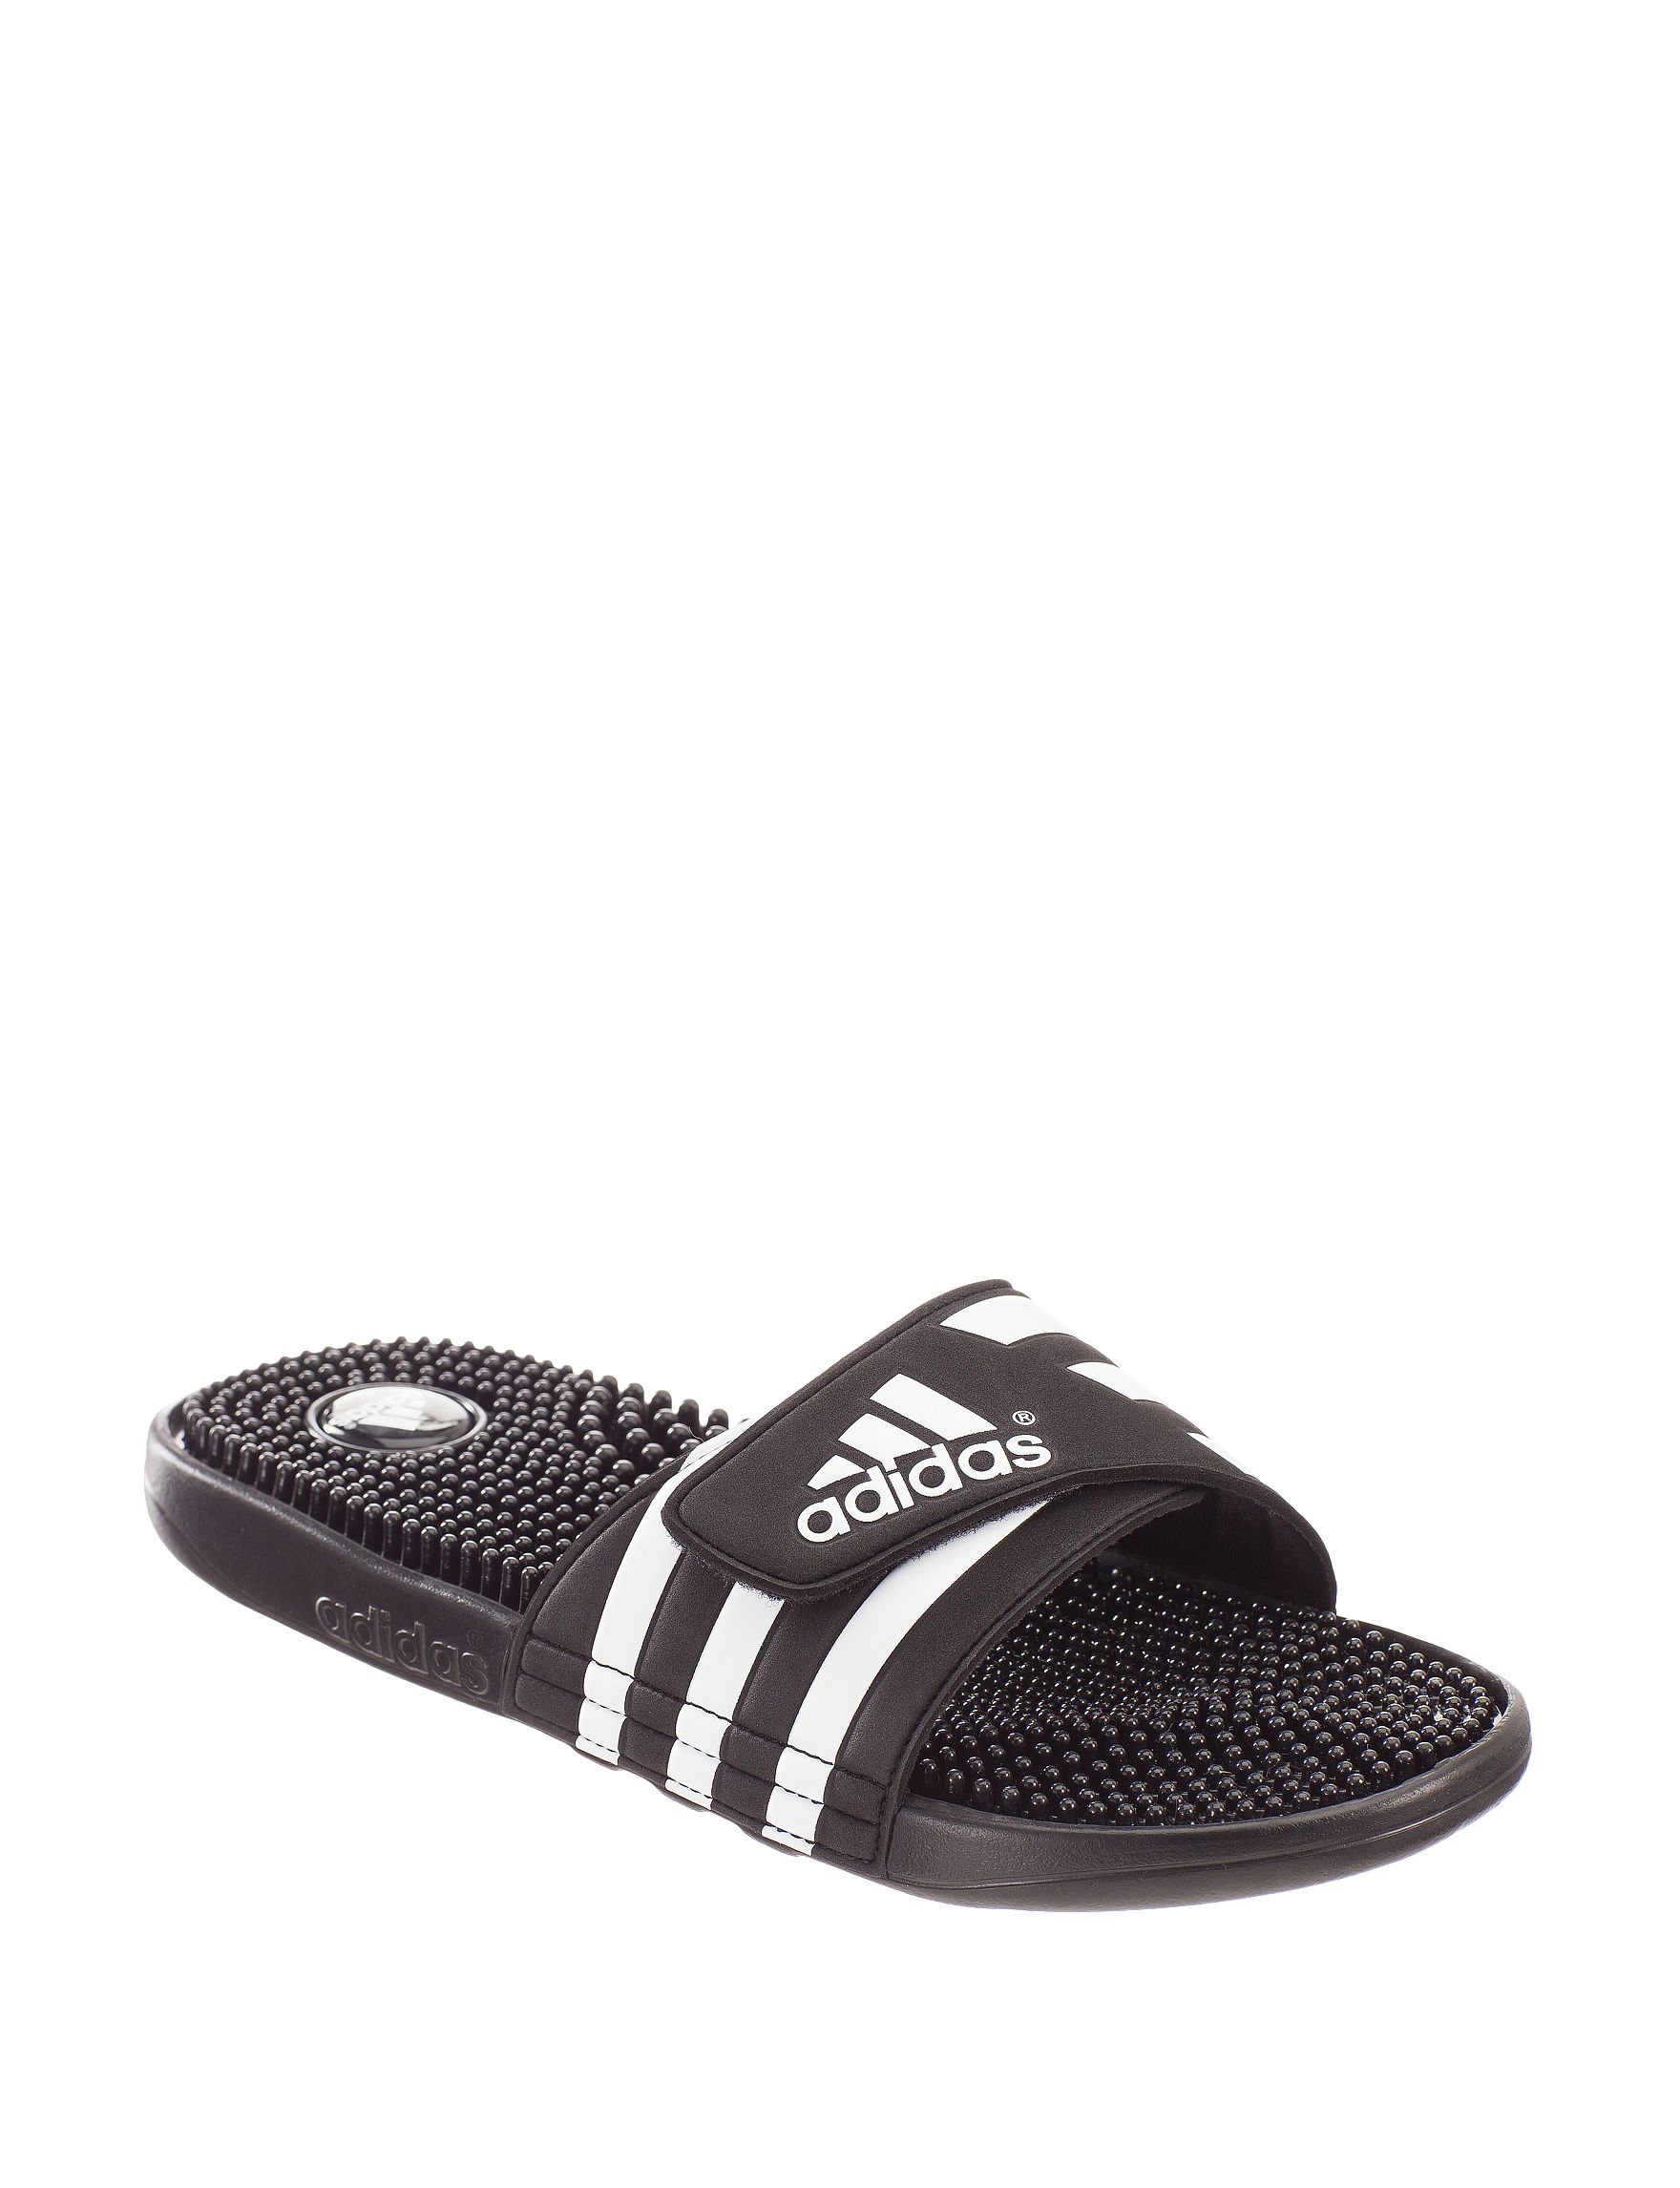 Adidas Black / White Slide Sandals